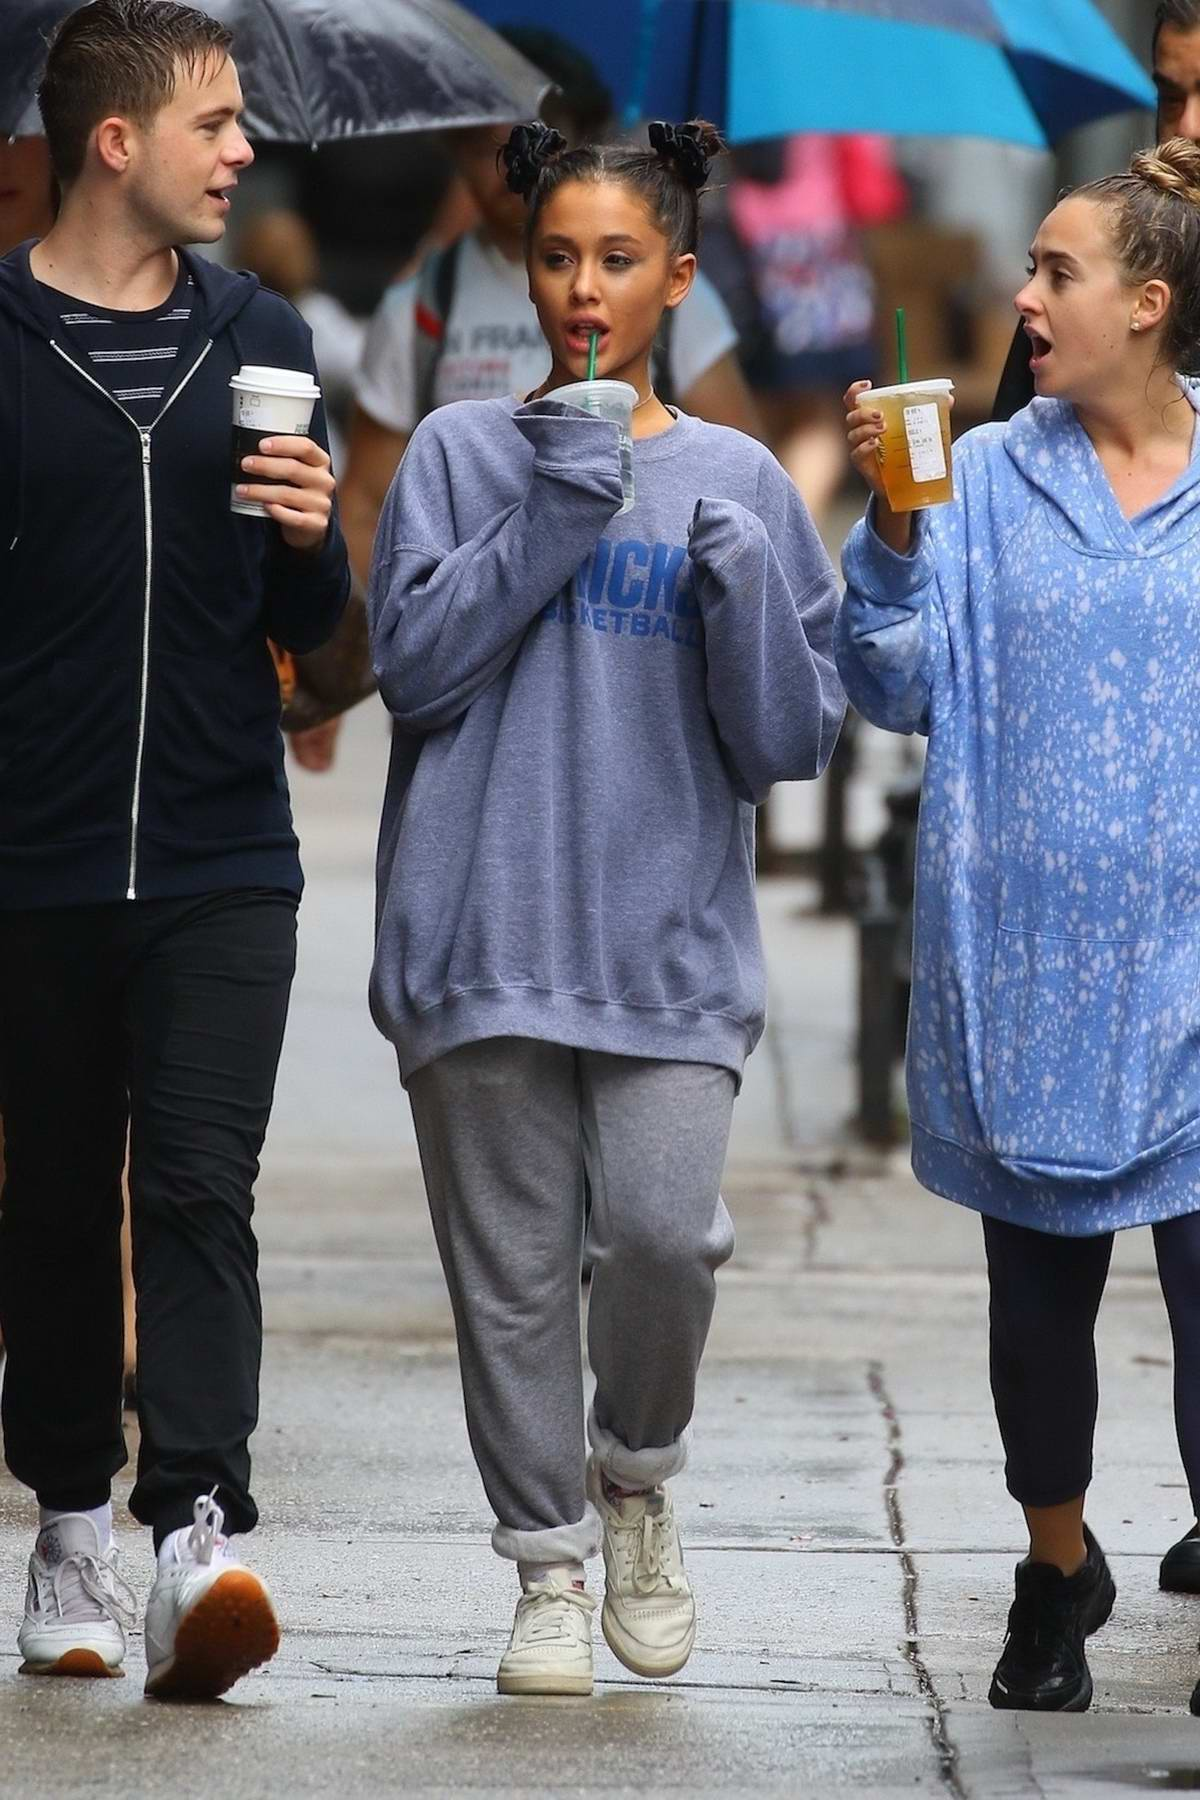 Ariana Grande steps out in the rain to enjoy coffee with friends in New York City